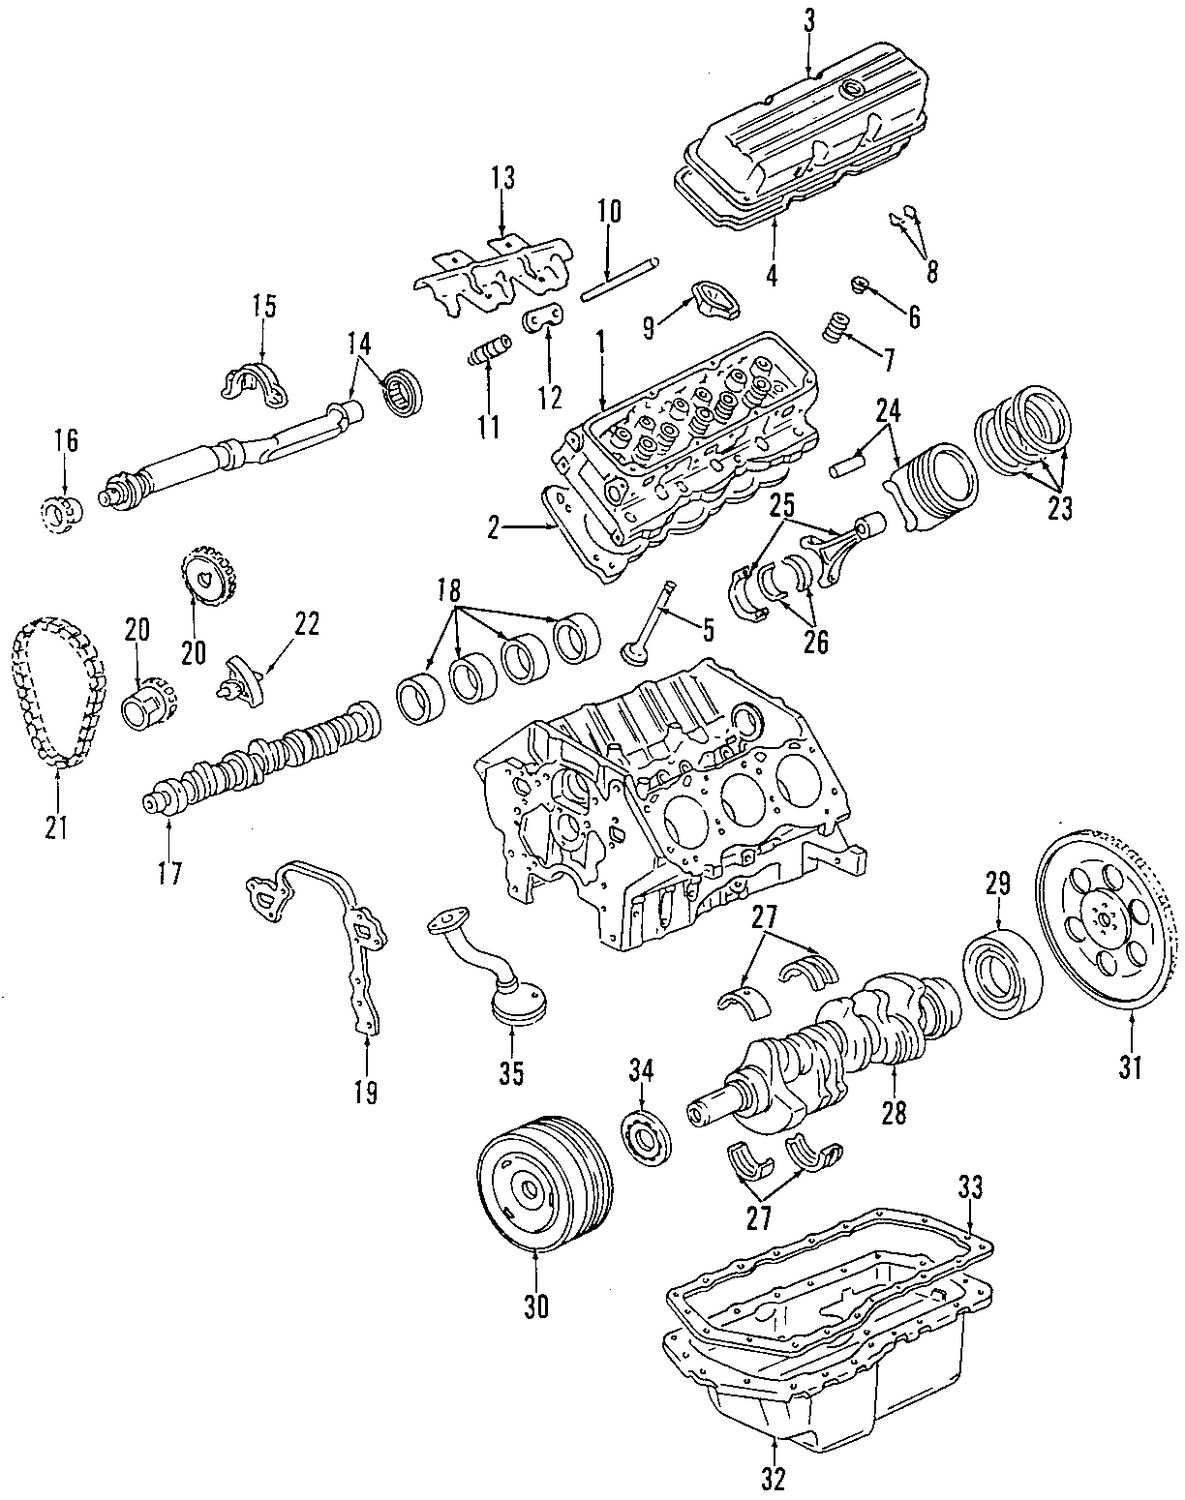 Oldsmobile Intrigue Cylinder Head And Valves Parts